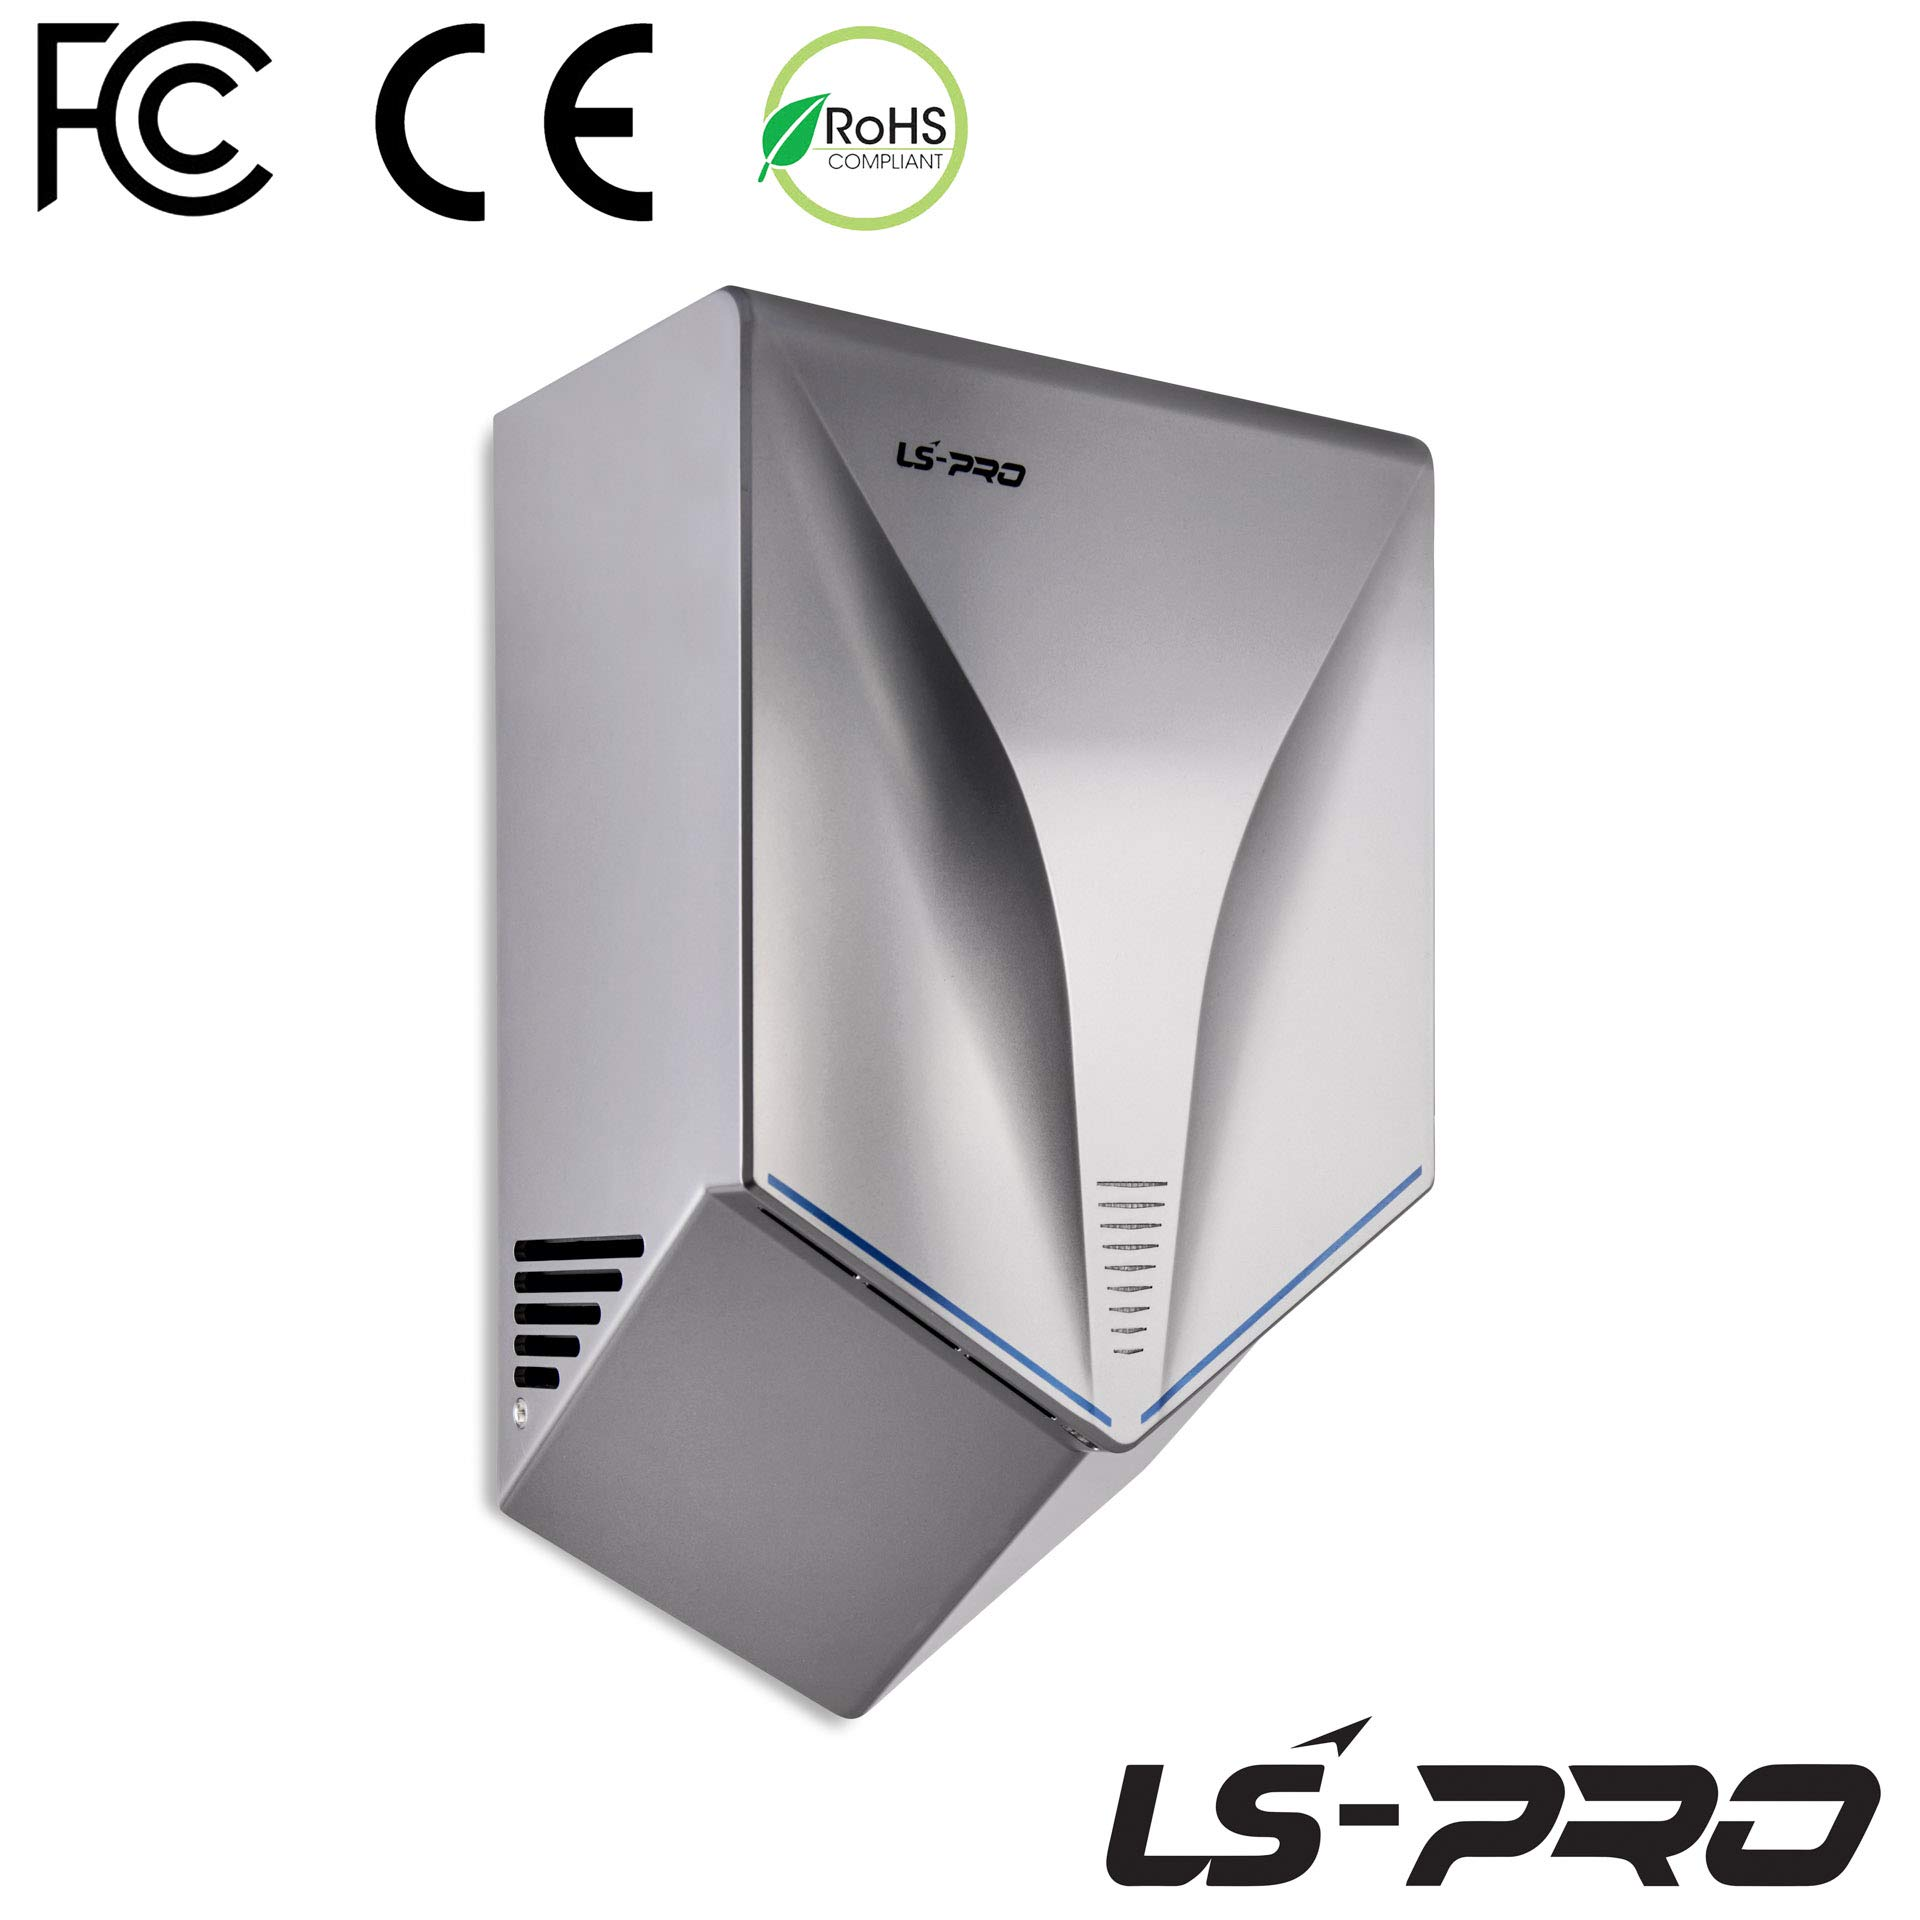 LS-PRO Automatic Hand Dryer for Commercial Bathrooms. High Speed Hot Air, Dry Hands in 7s. No Touch Operation with Infrared Sensor. Easy & Fast Installation. Low Noise 60 dB. 1 Year Warranty.